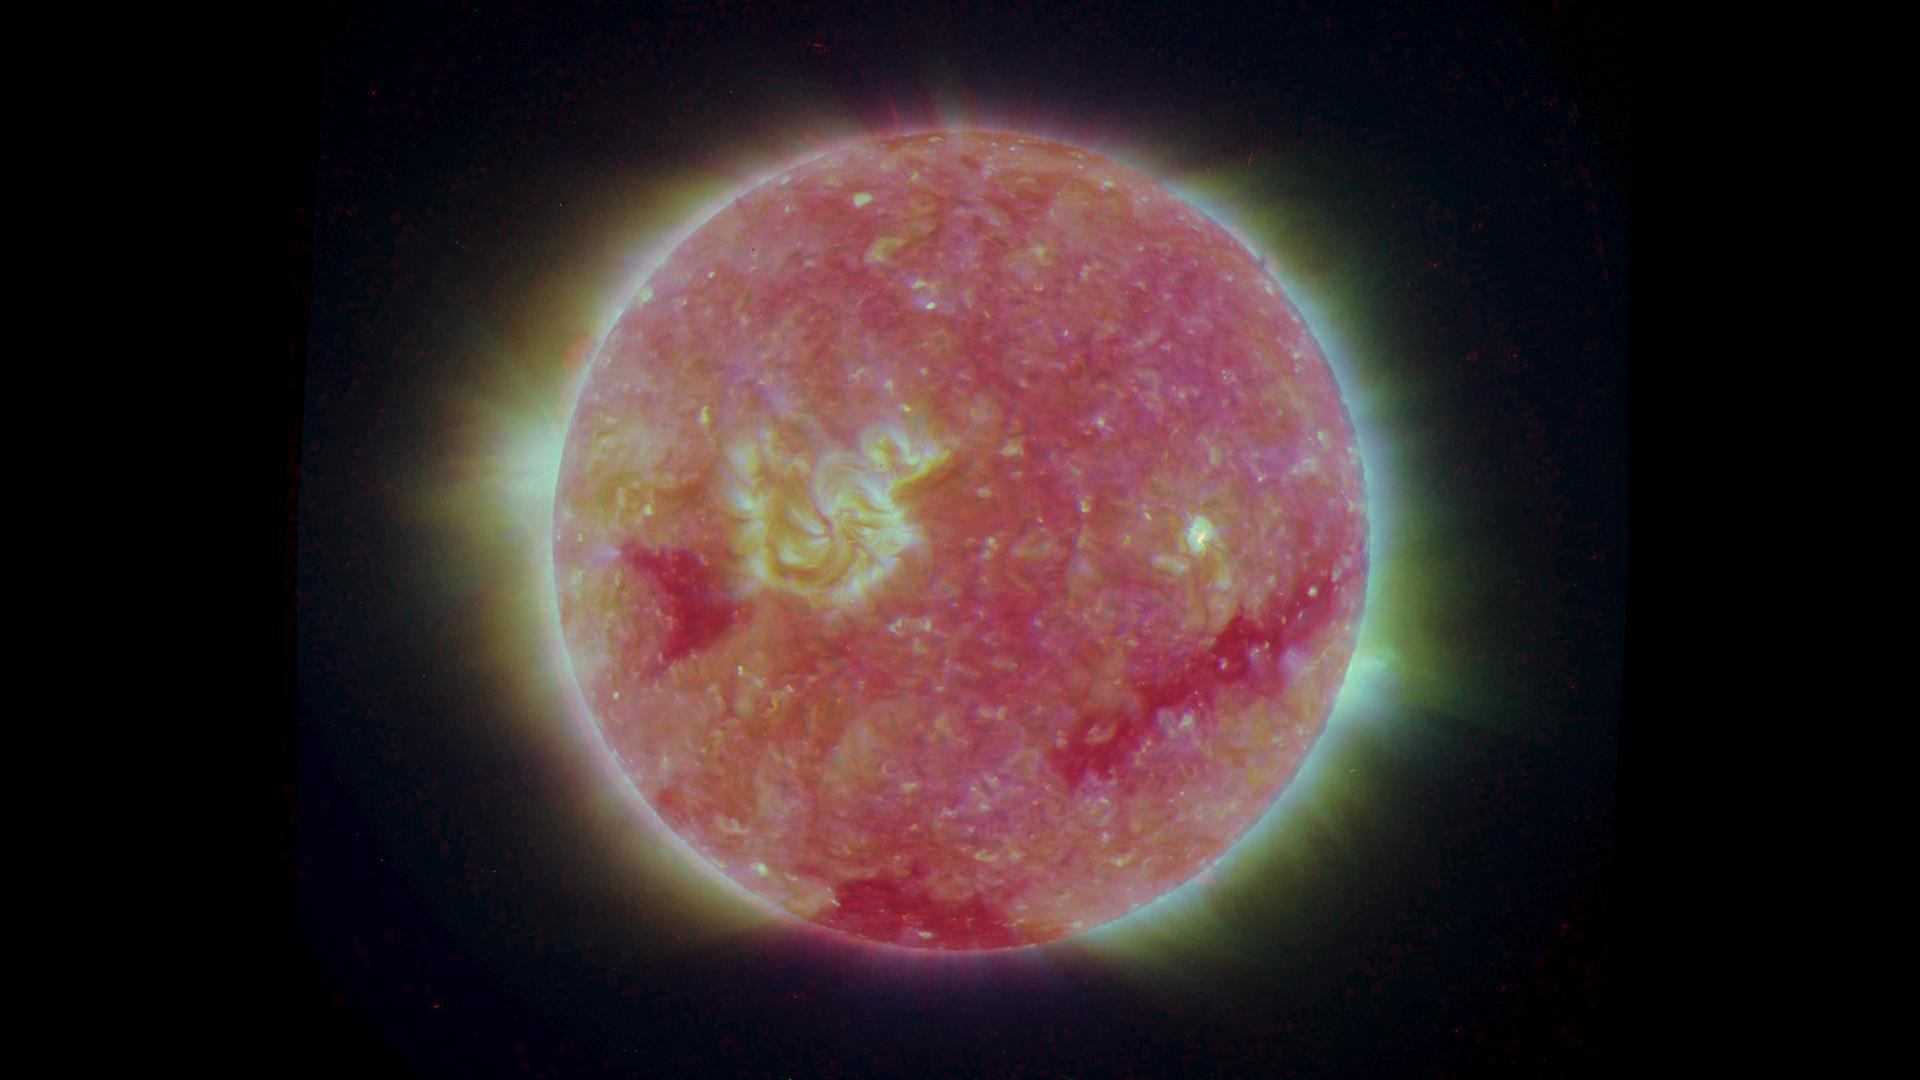 The structure of the Sun's corona shows well in this image from NASA's Solar TErrestrial RElations Observatory (STEREO).